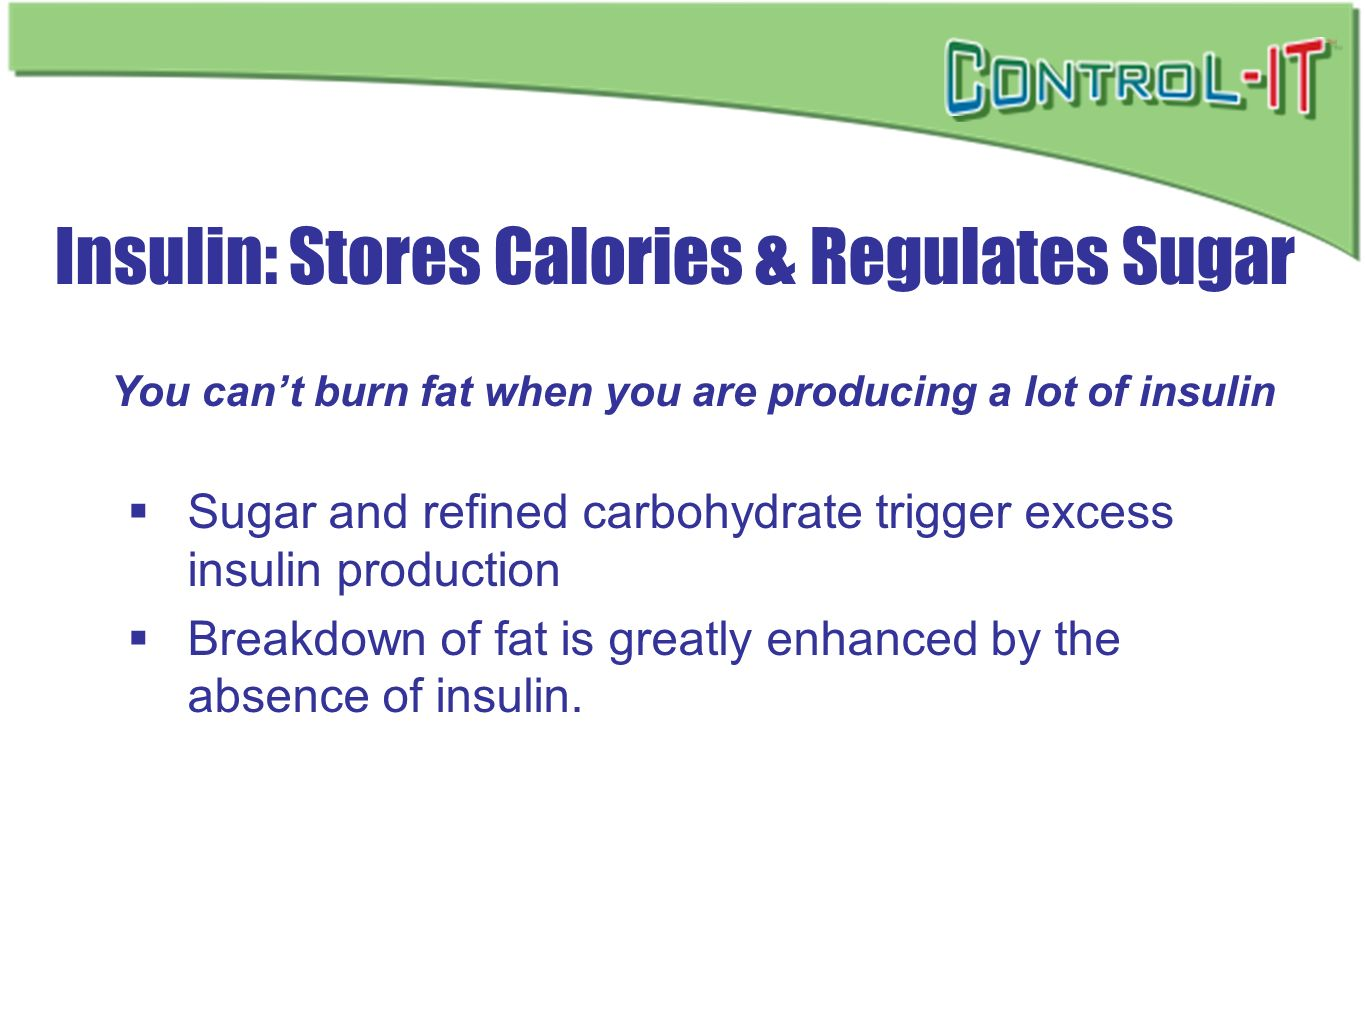 You can't burn fat when you are producing a lot of insulin